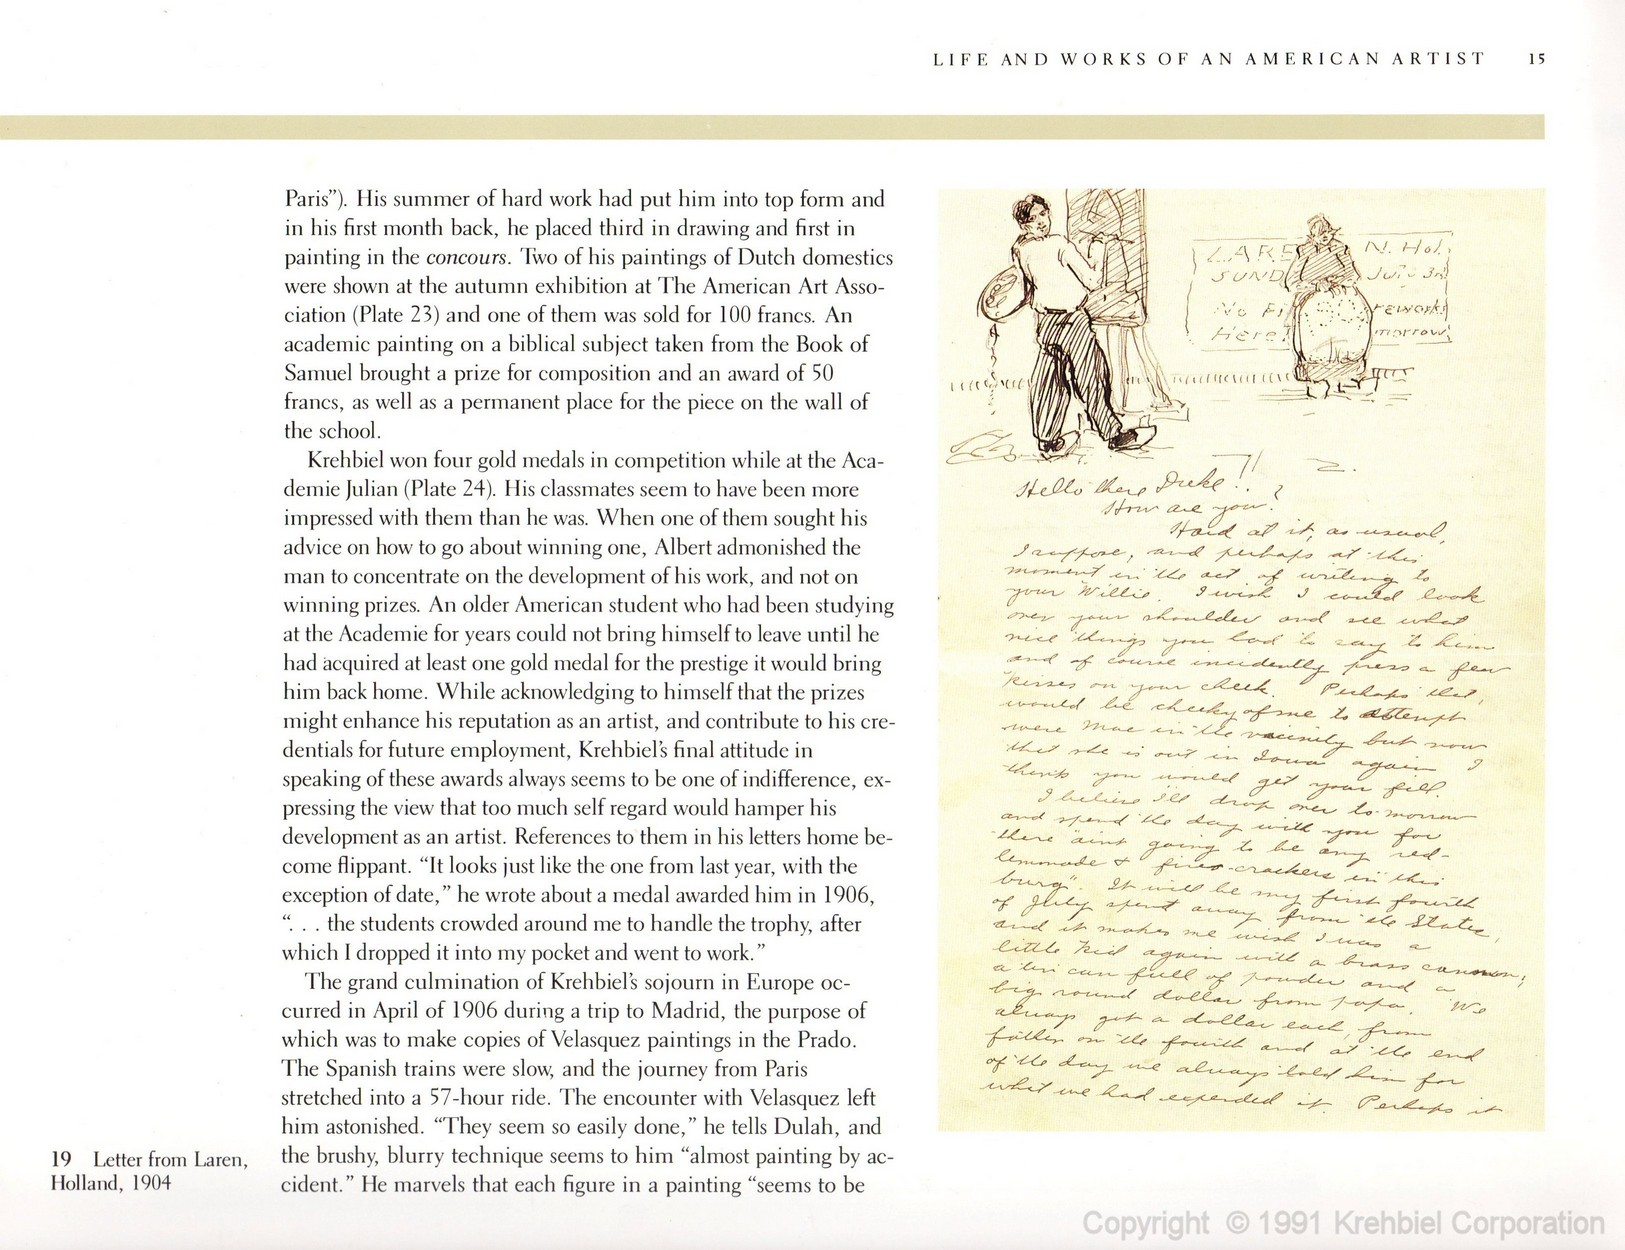 Page 15 of Krehbiel - Life and Works of an American Artist